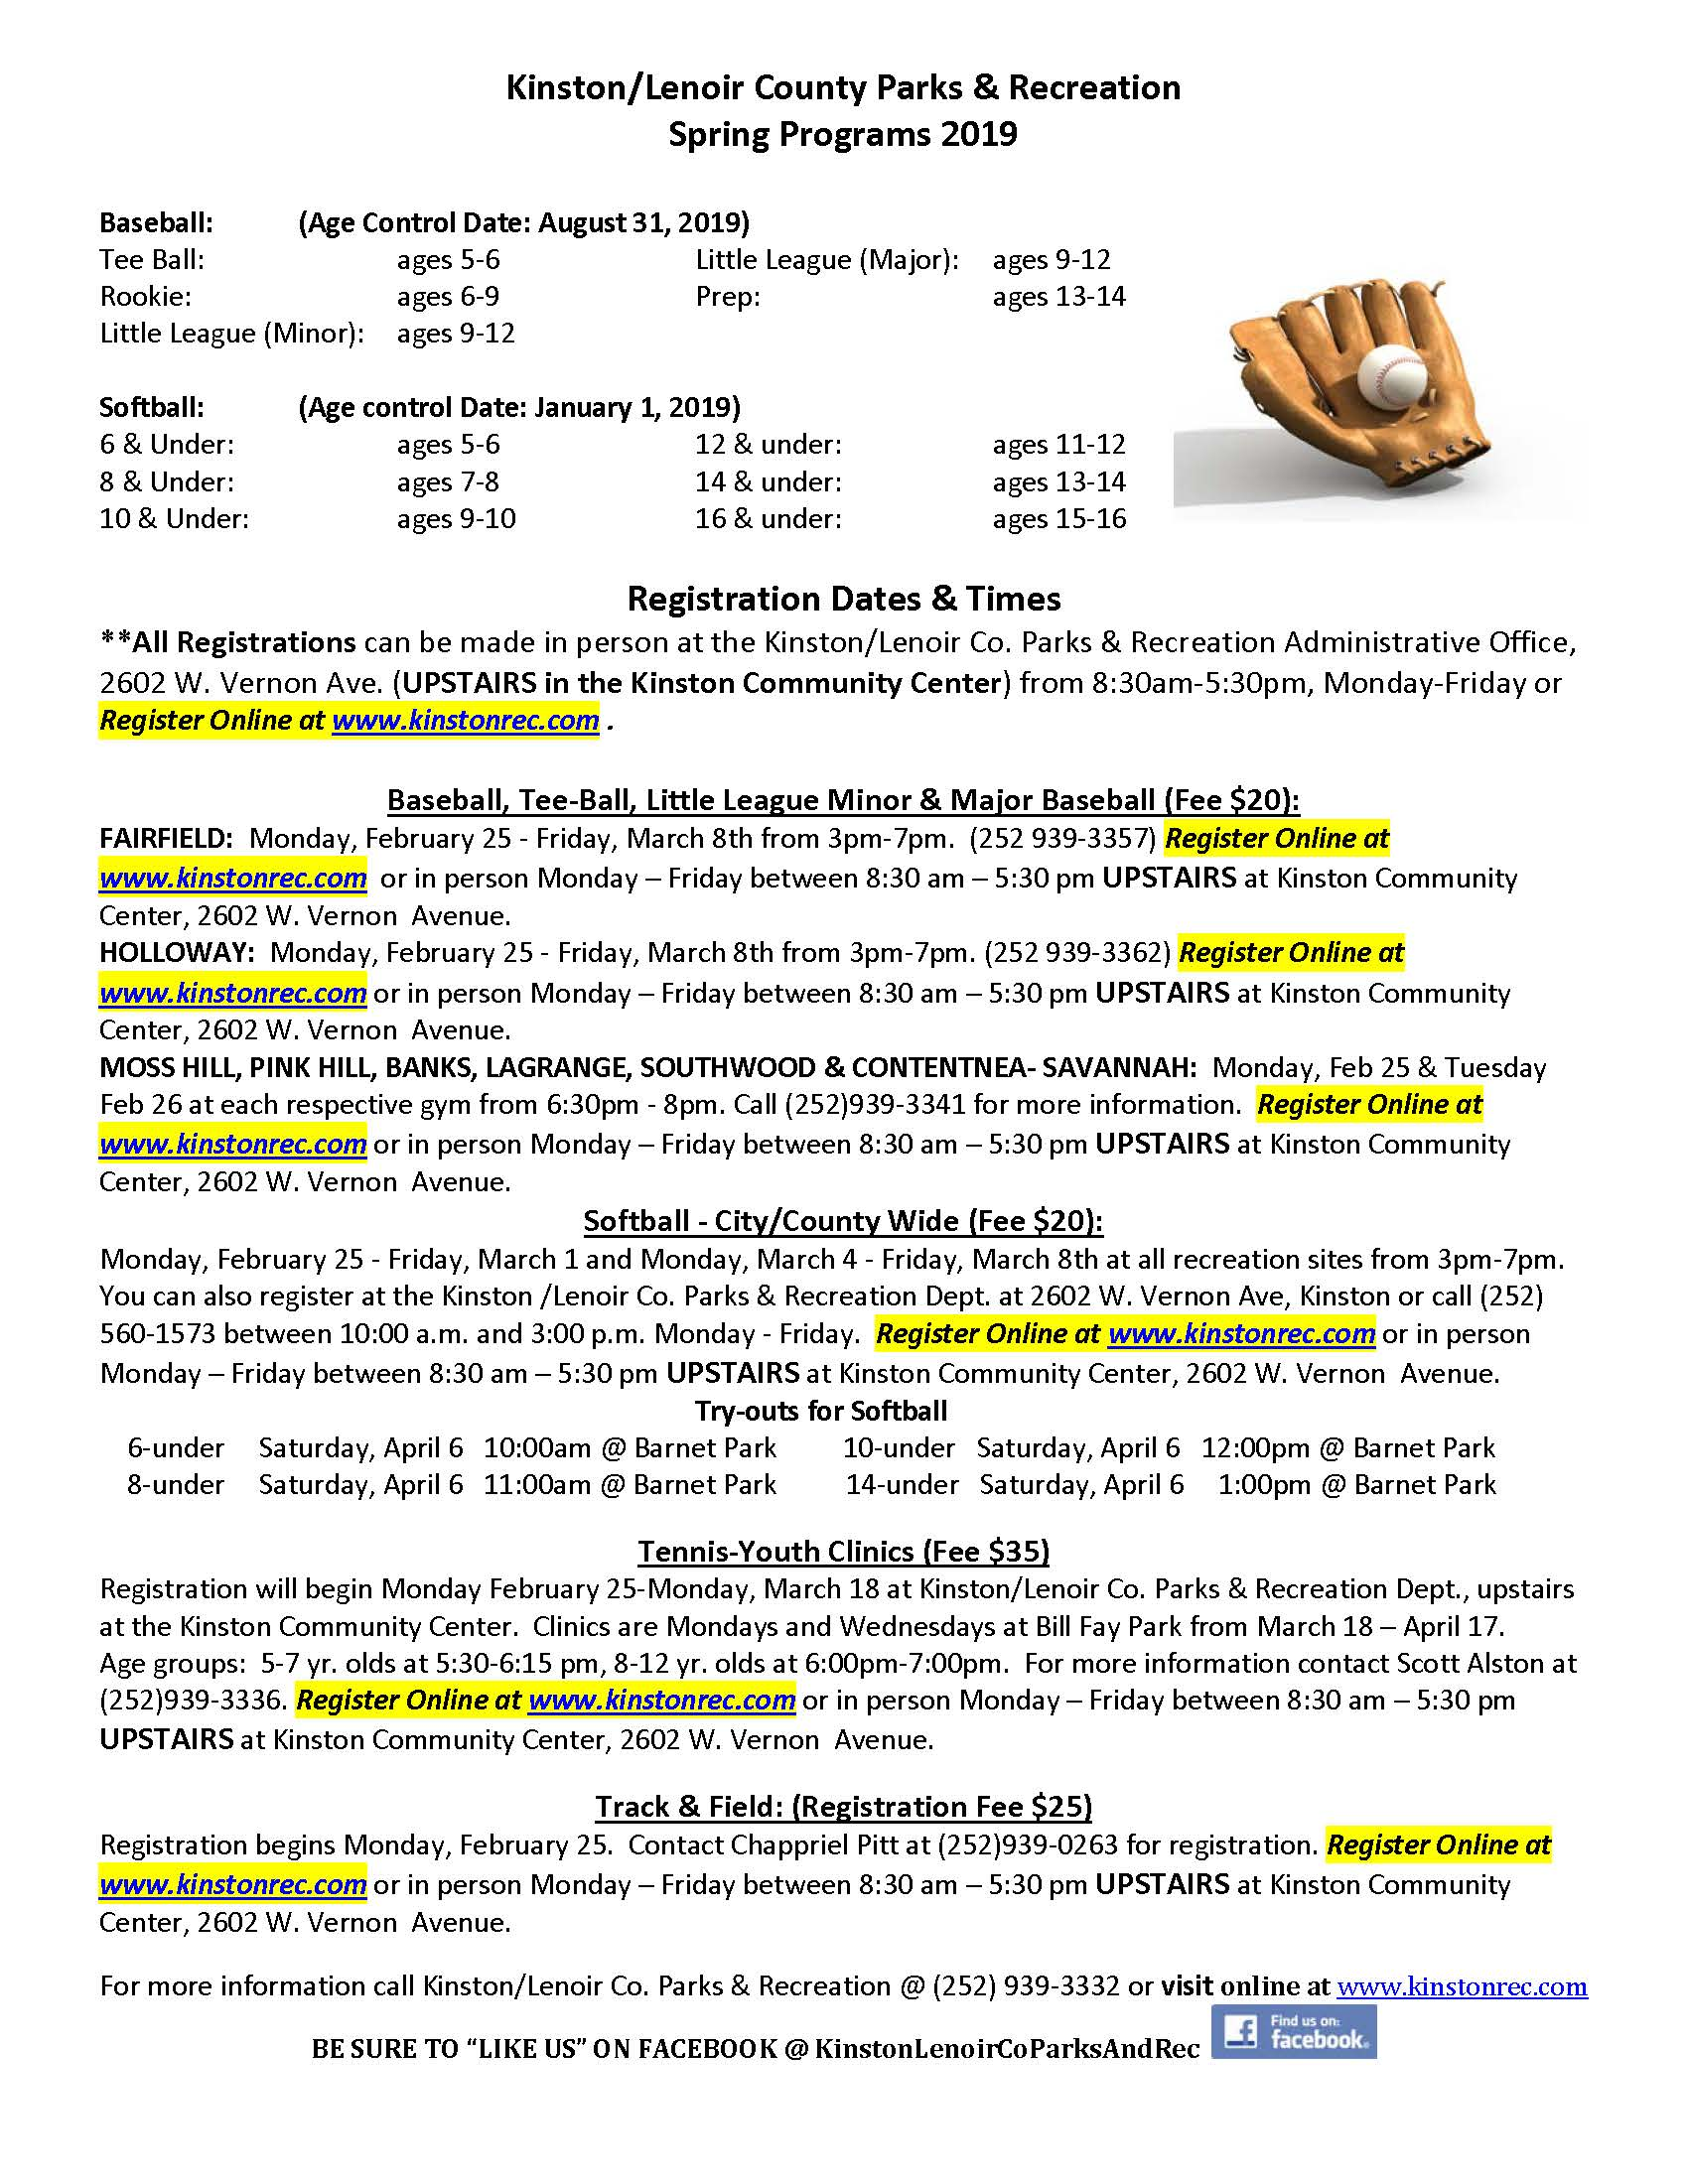 2019_Spring Baseball-Softball Flyer.jpg